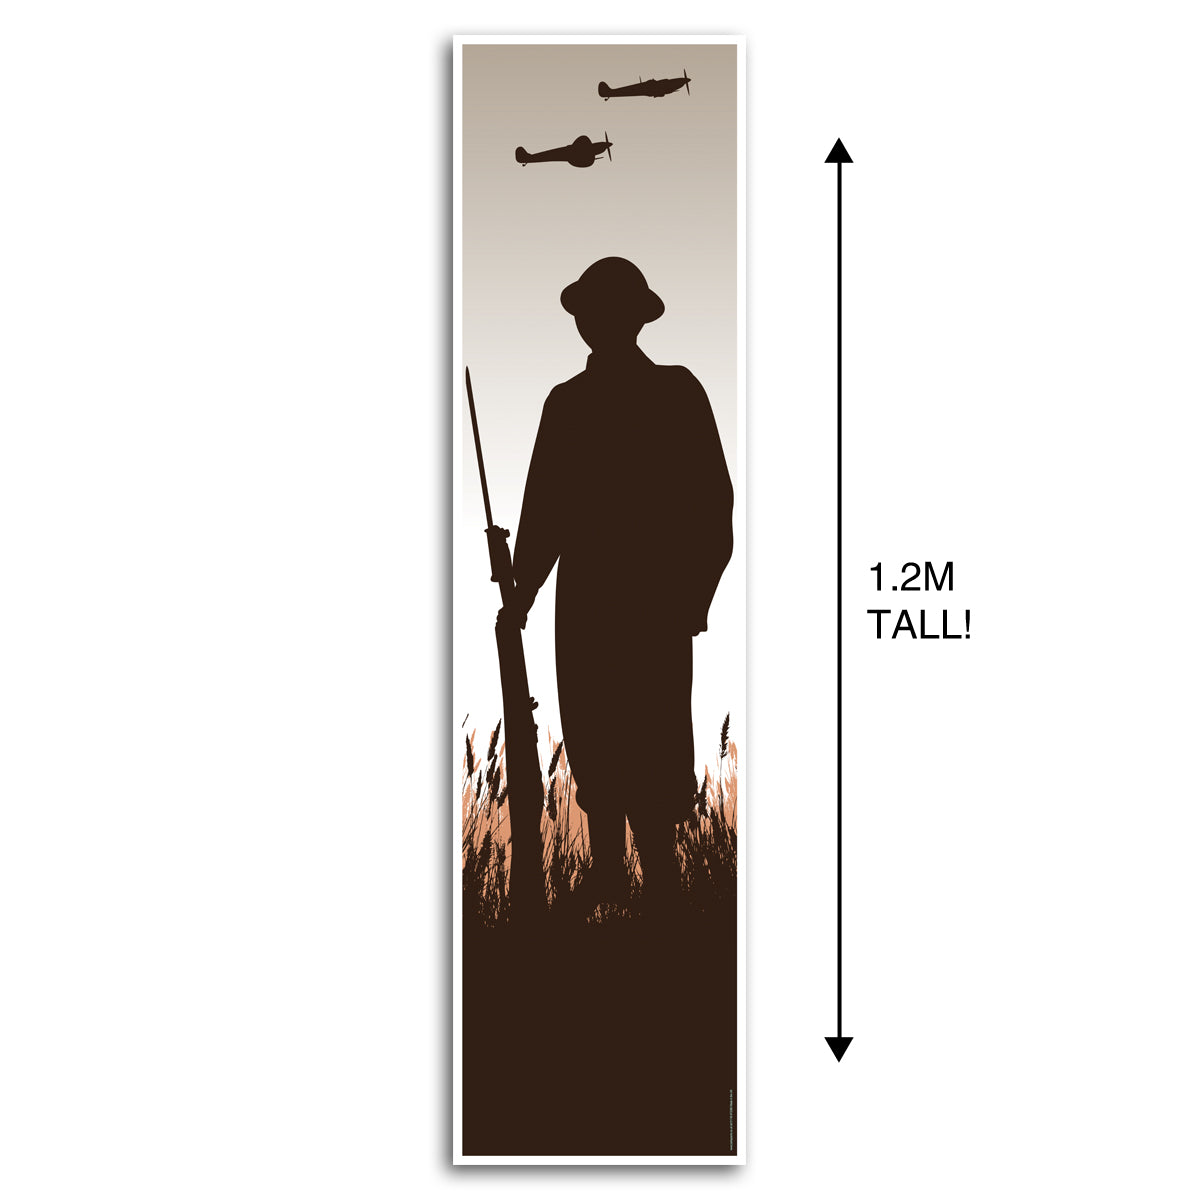 World War 2 WWII British Soldier Silhouette Portrait Wall Banner Decoration - 1.2m